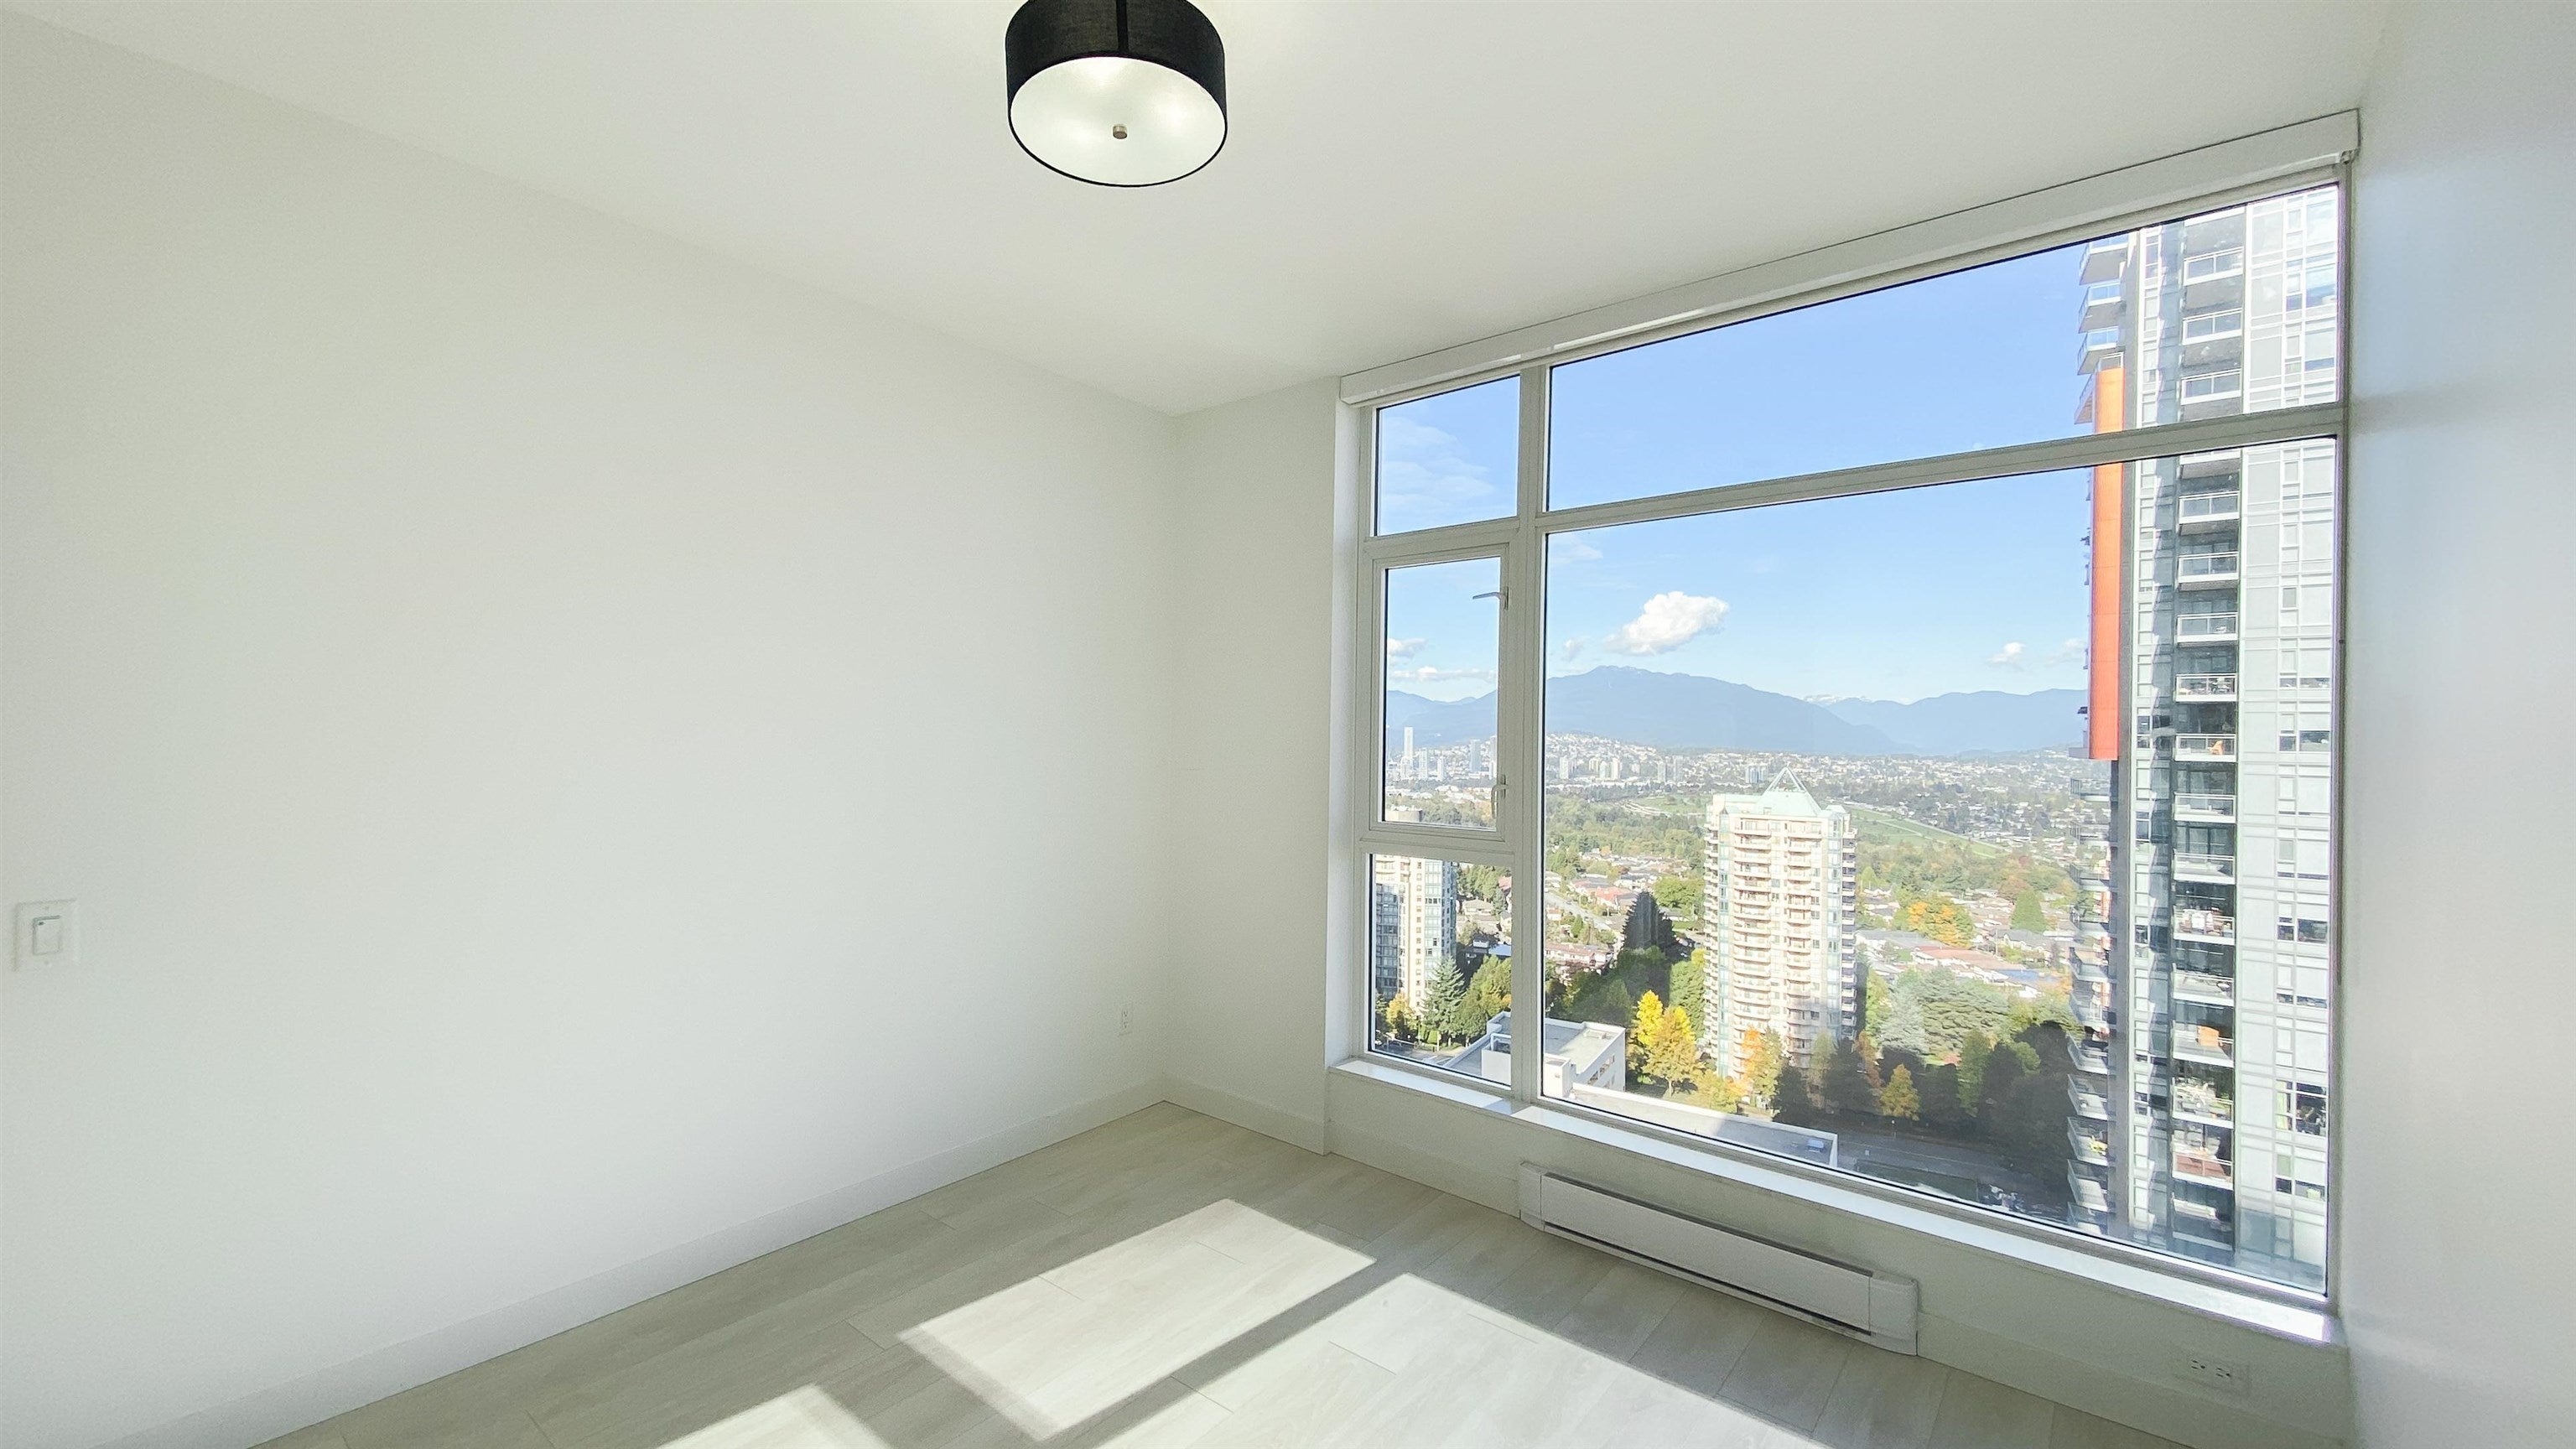 2510 4670 ASSEMBLY WAY - Metrotown Apartment/Condo for sale, 2 Bedrooms (R2625732) - #19